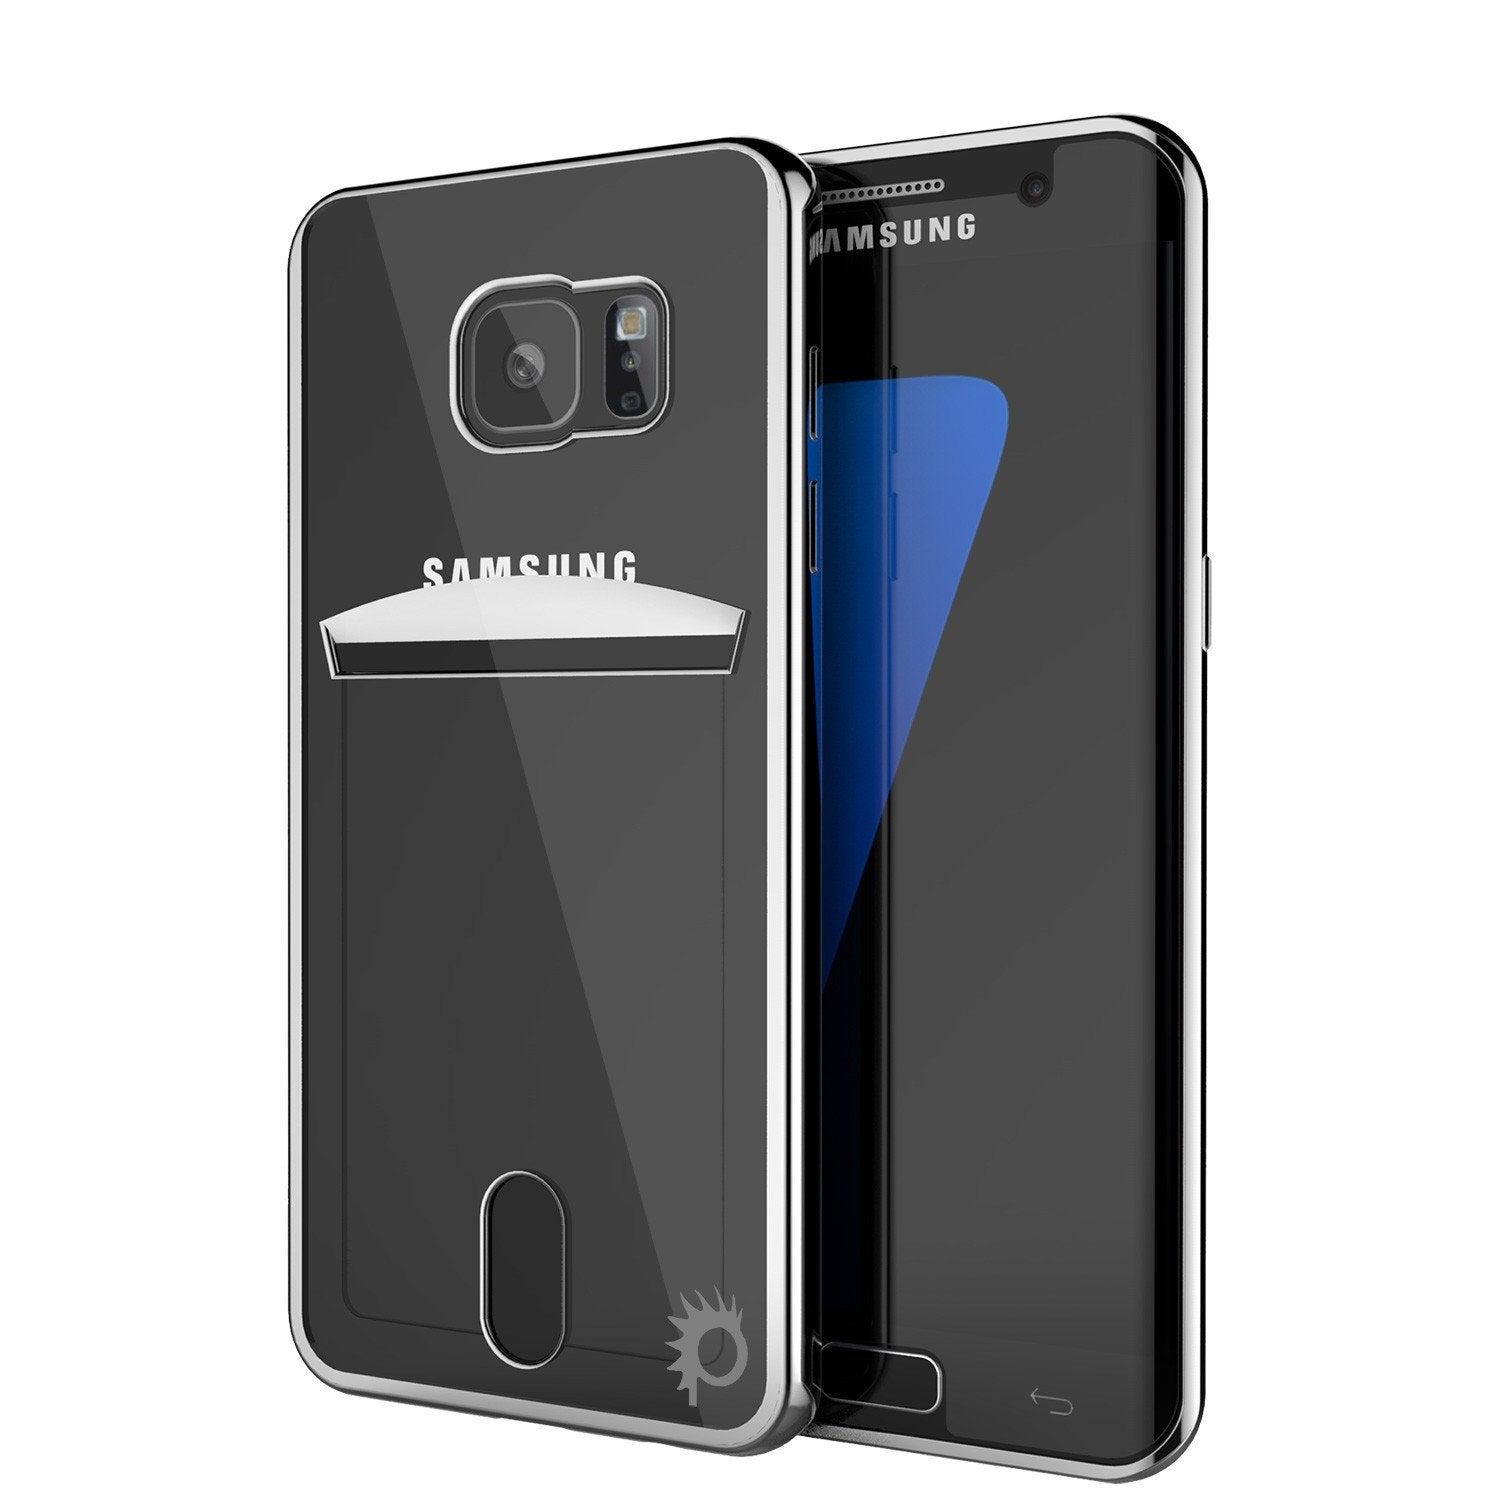 Galaxy S7 Case, PUNKCASE® LUCID Silver Series | Card Slot